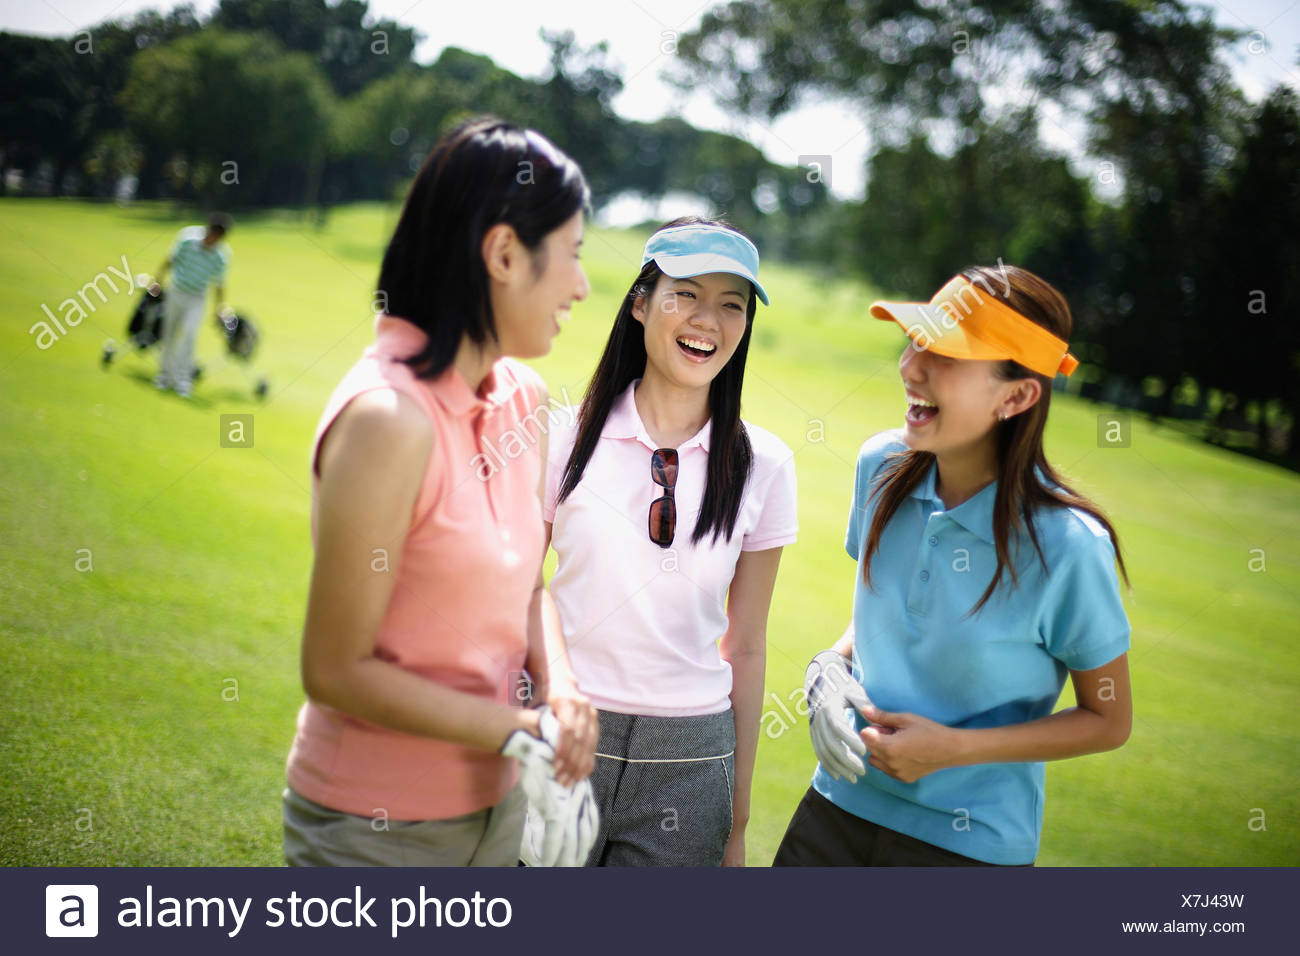 Three women playing golf with man in background - Stock Image